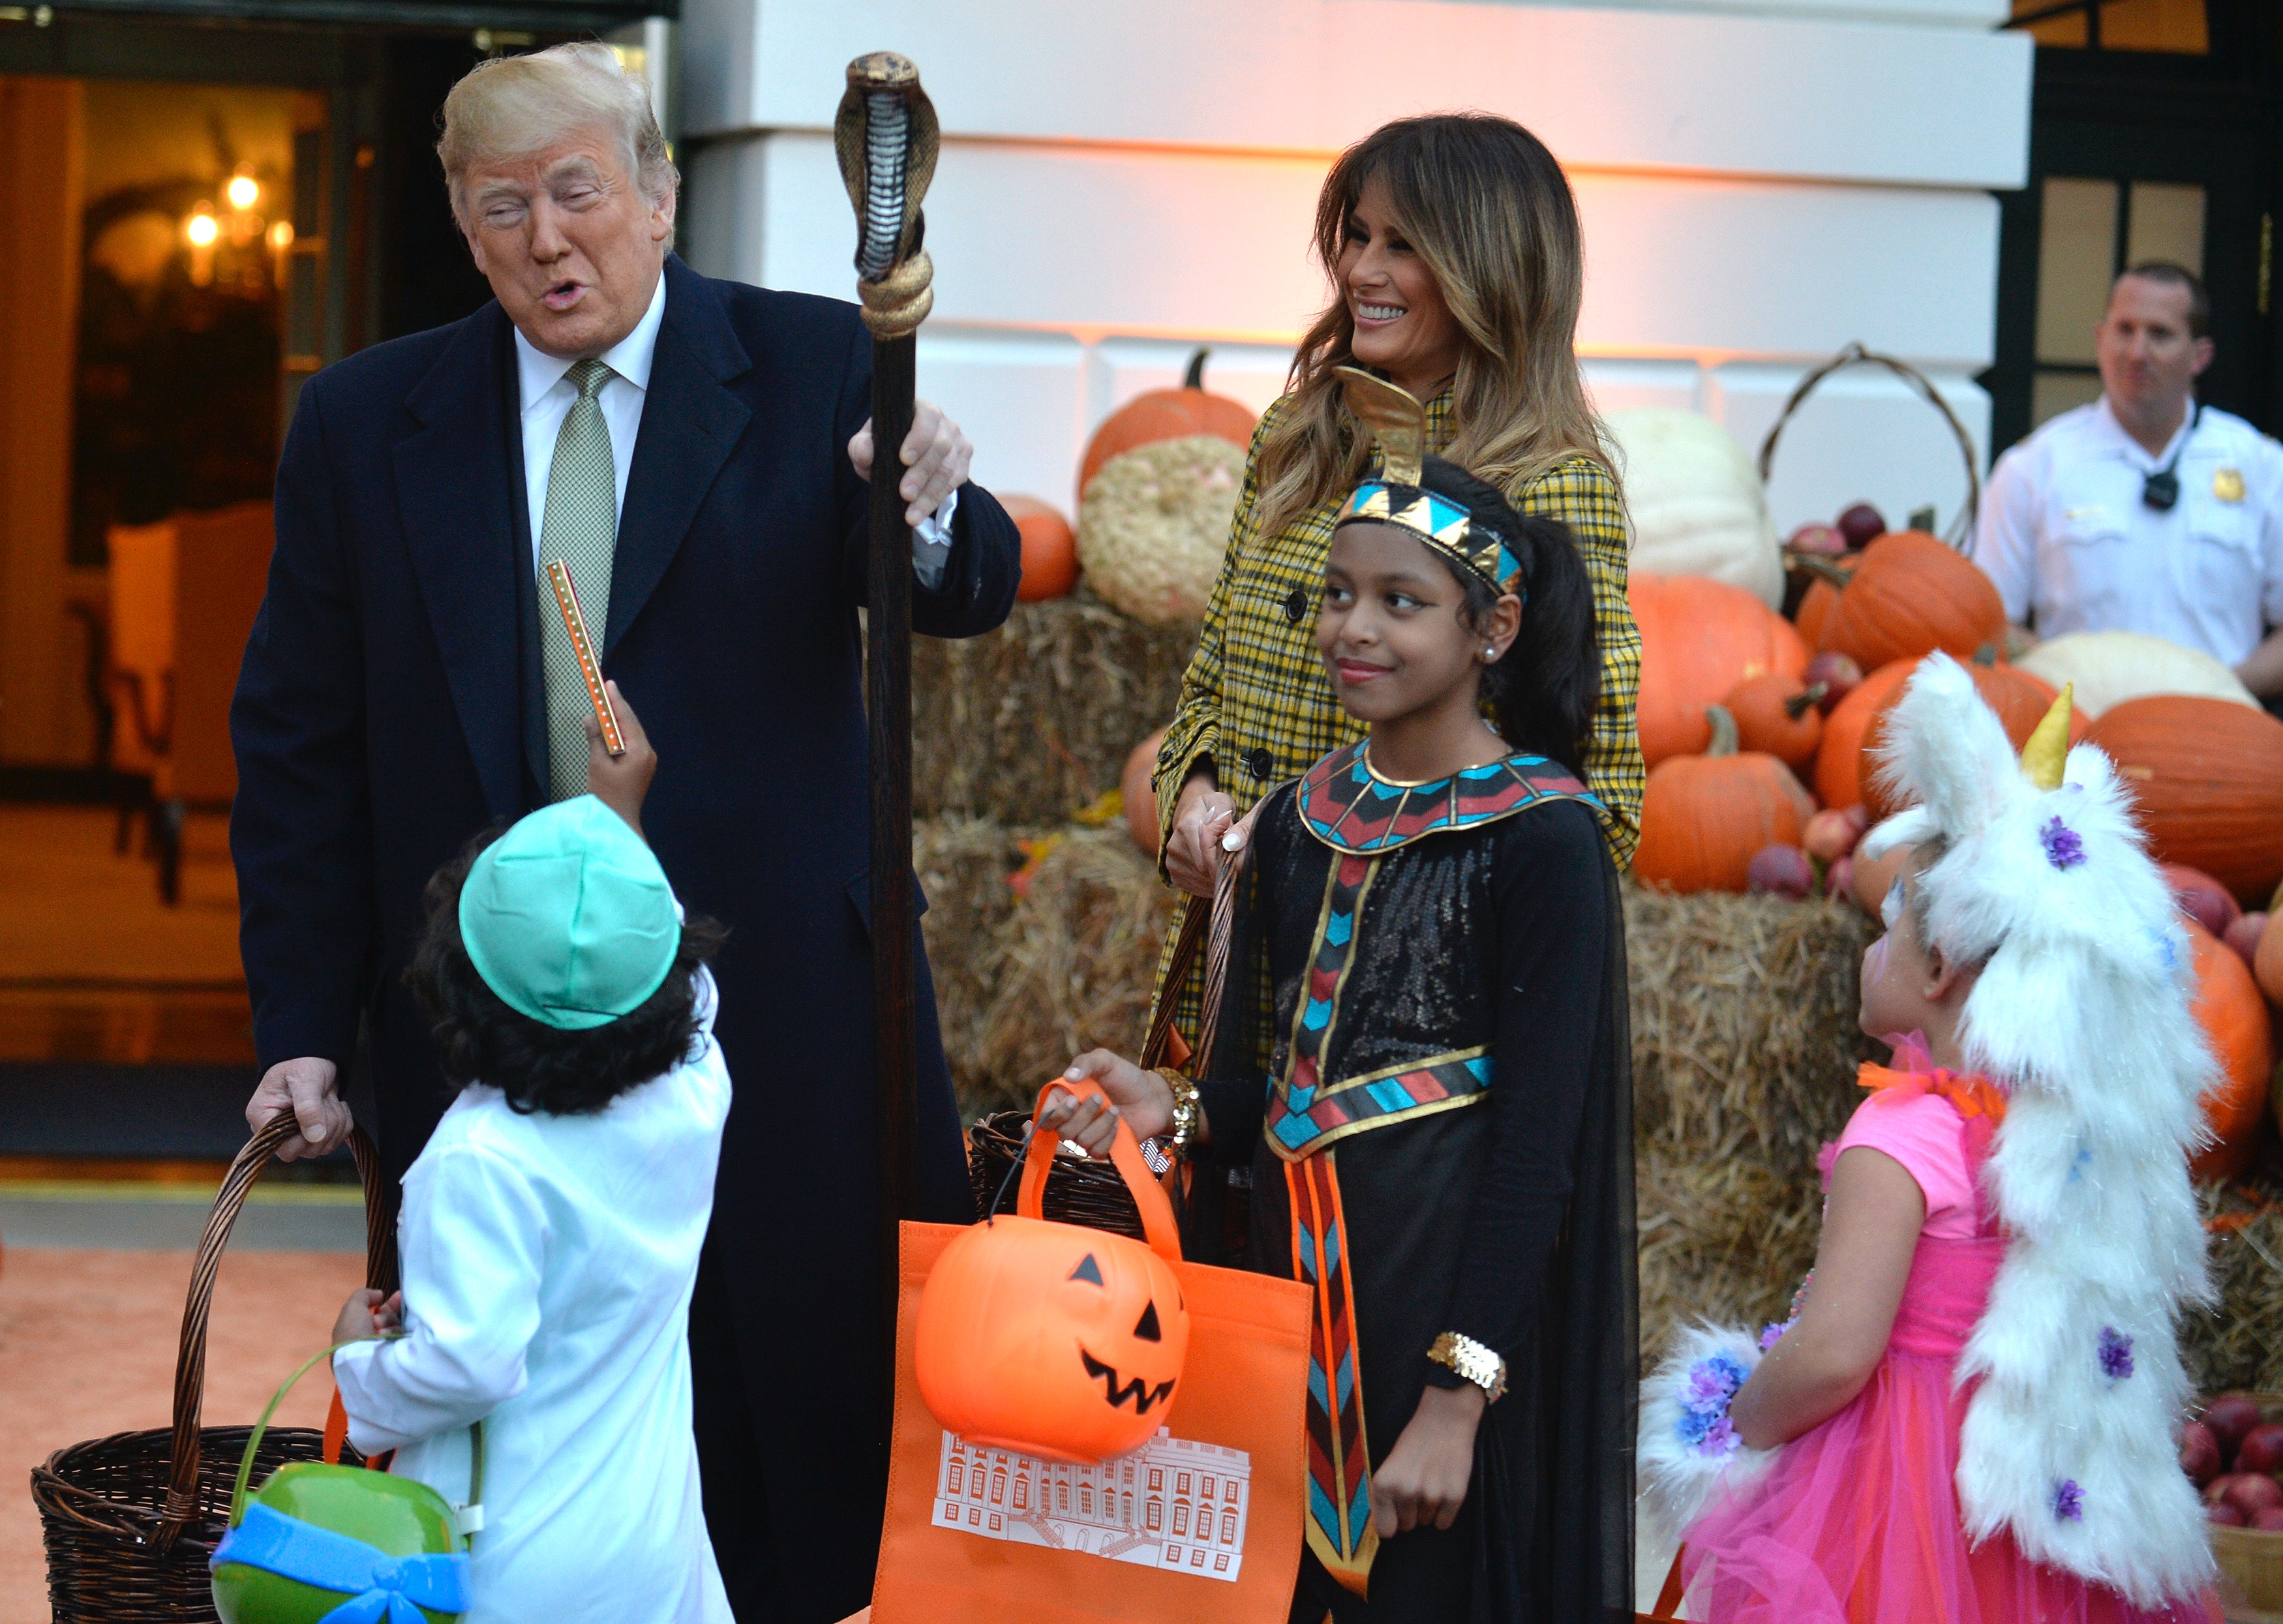 Trump \u0026 Obama\u0027s White House Halloween Parties Show They Have